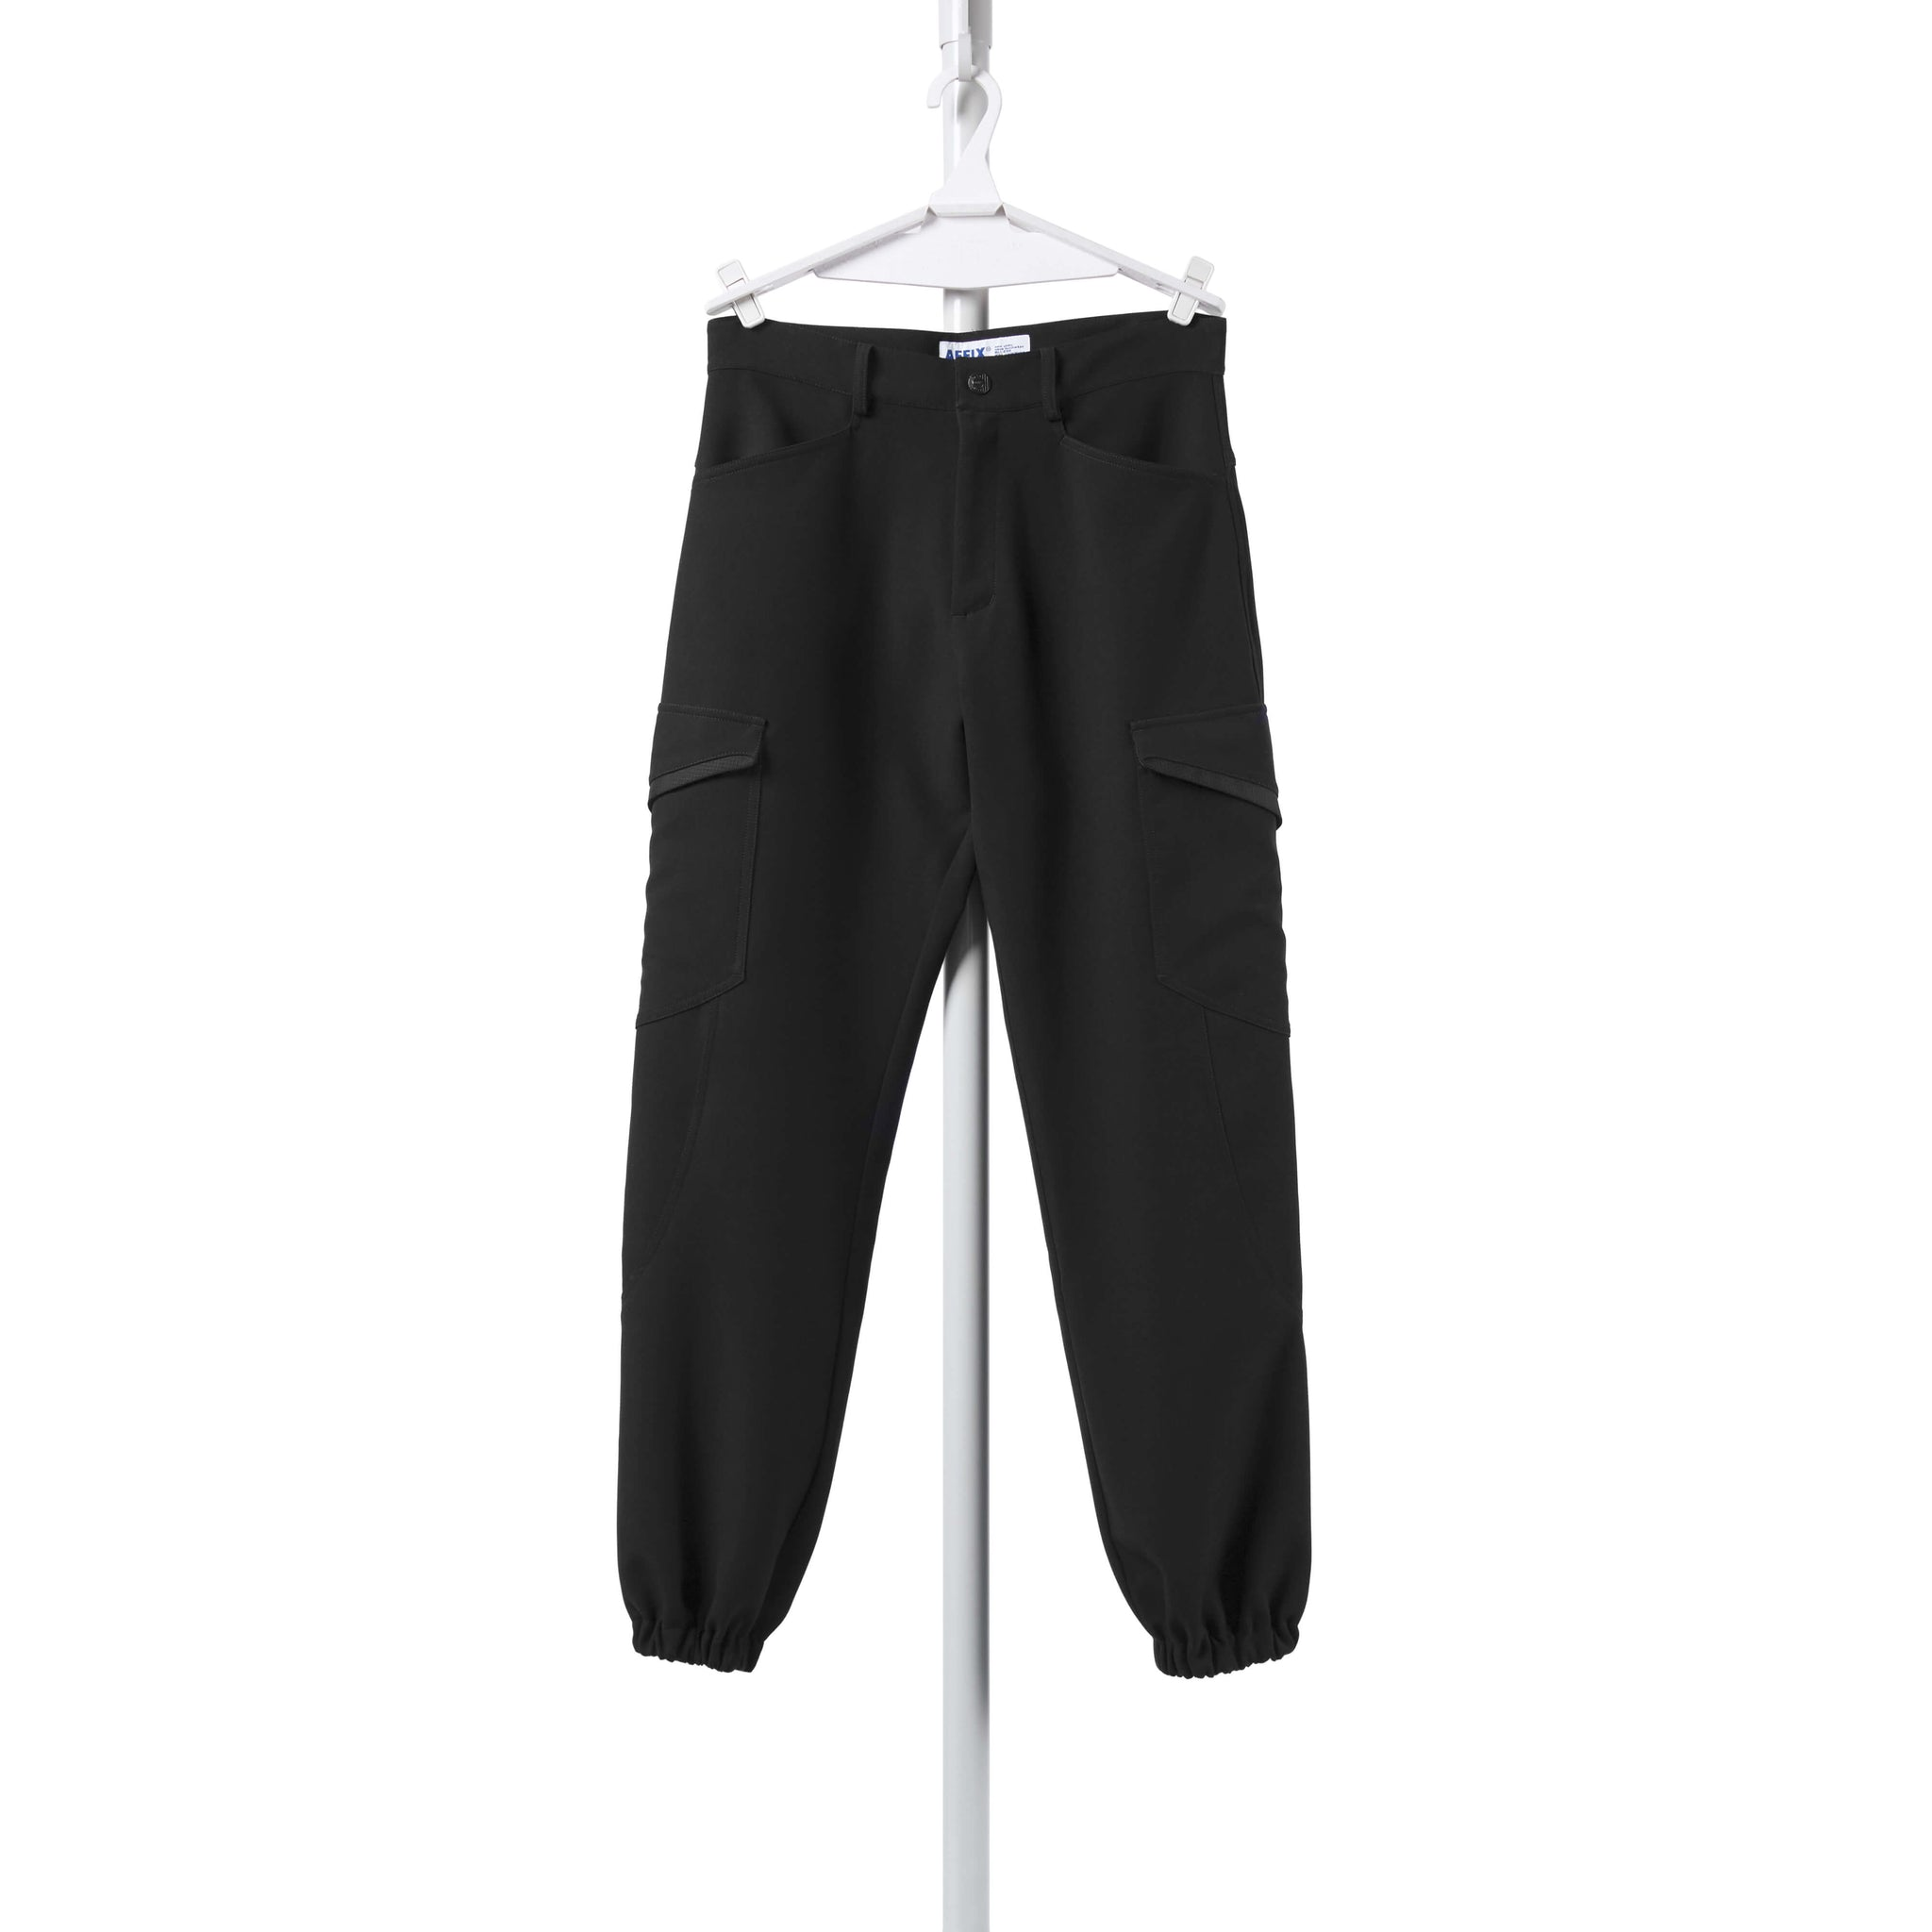 AFFIX WORKS AFFXWRKS MOBILISATION PANT BLACK EXCLUSIVE